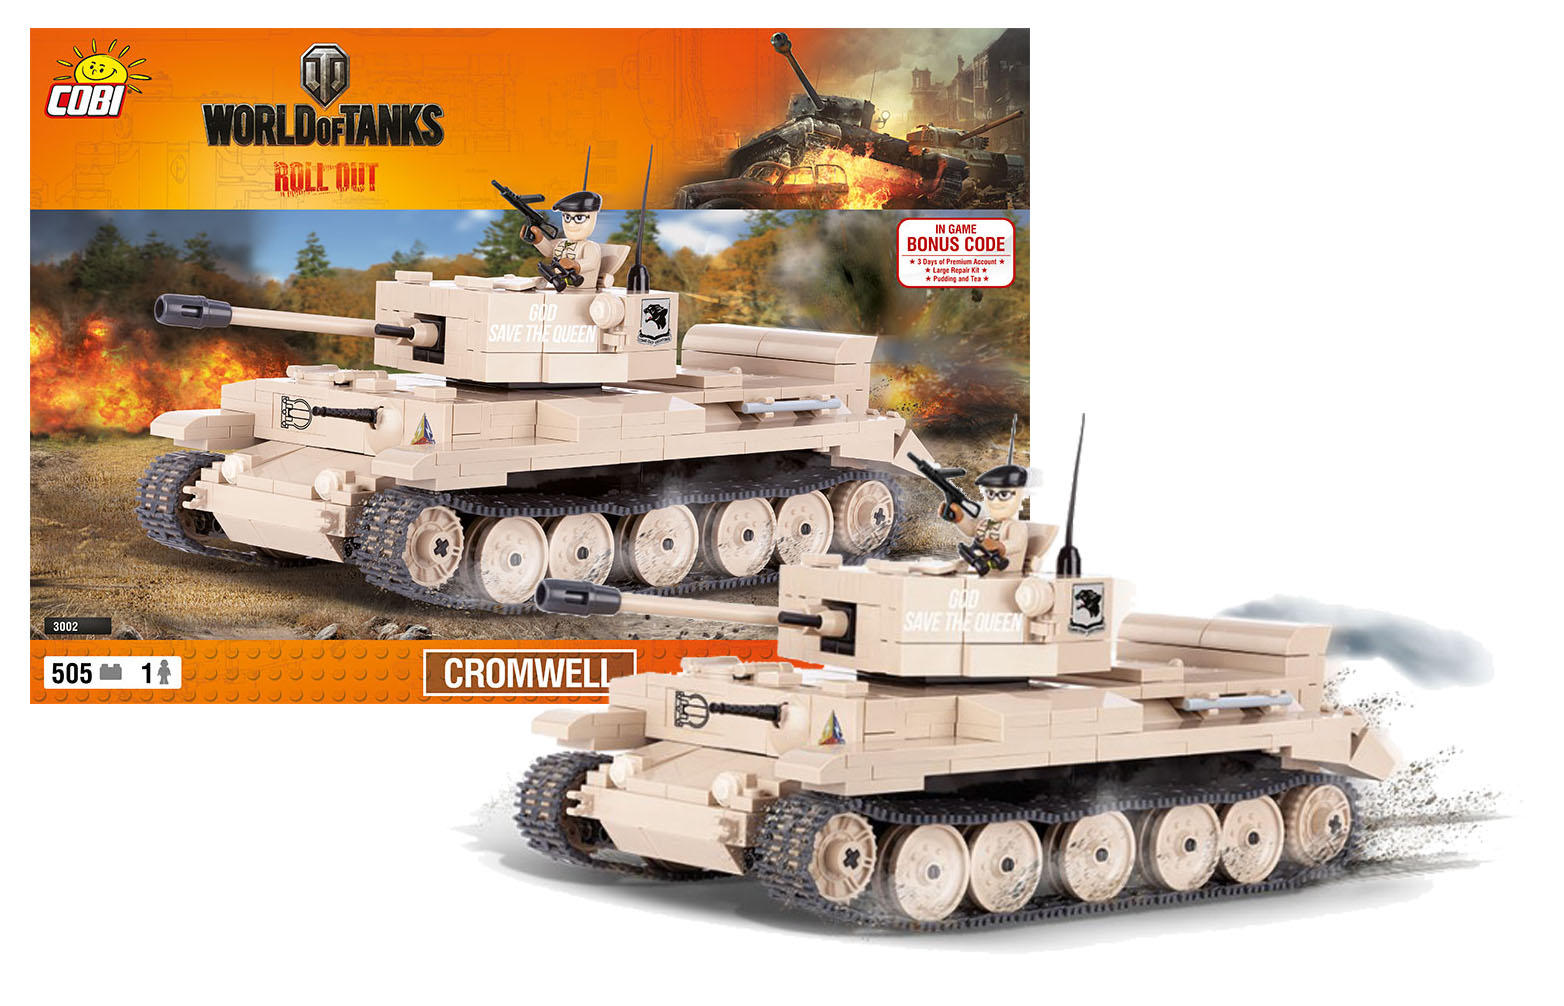 COBI stavebnice World of Tanks Cromwell 505 k, 1 f